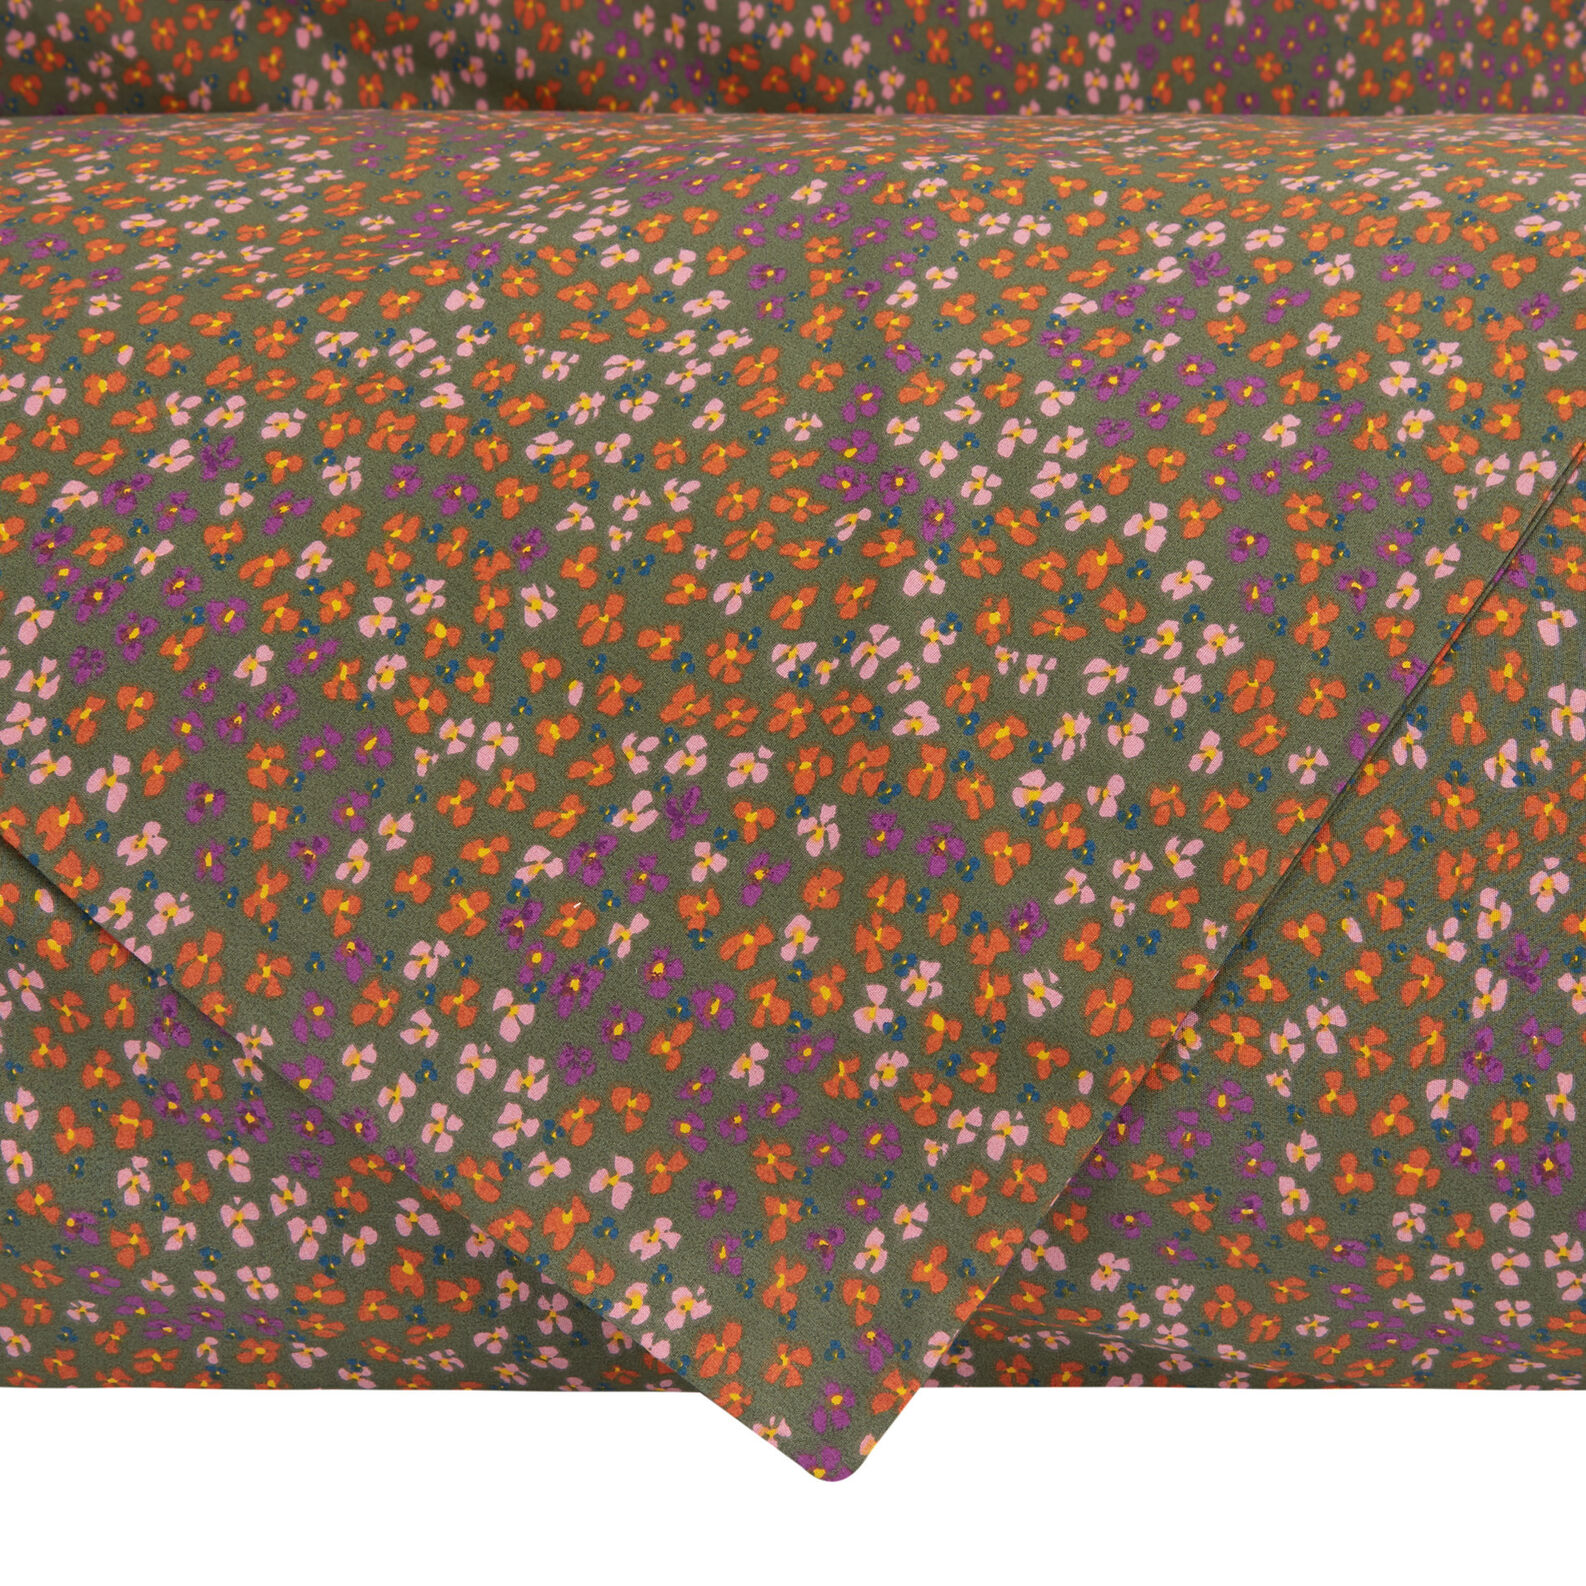 Duvet cover set in cotton percale with small flowers pattern